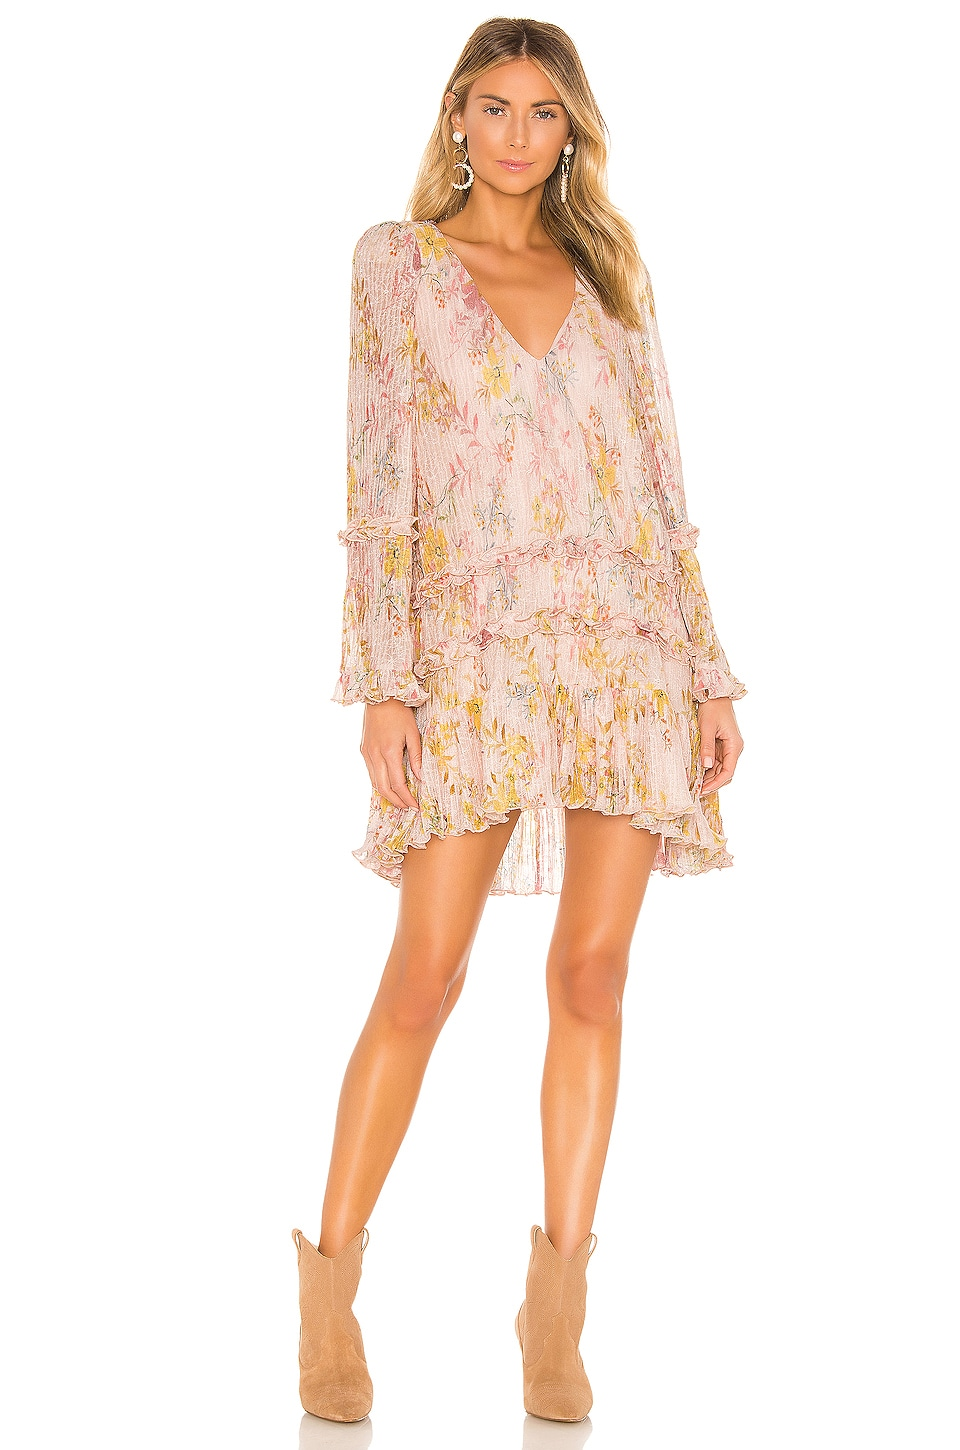 Tularosa Evelyn Dress in Lt Rose Floral